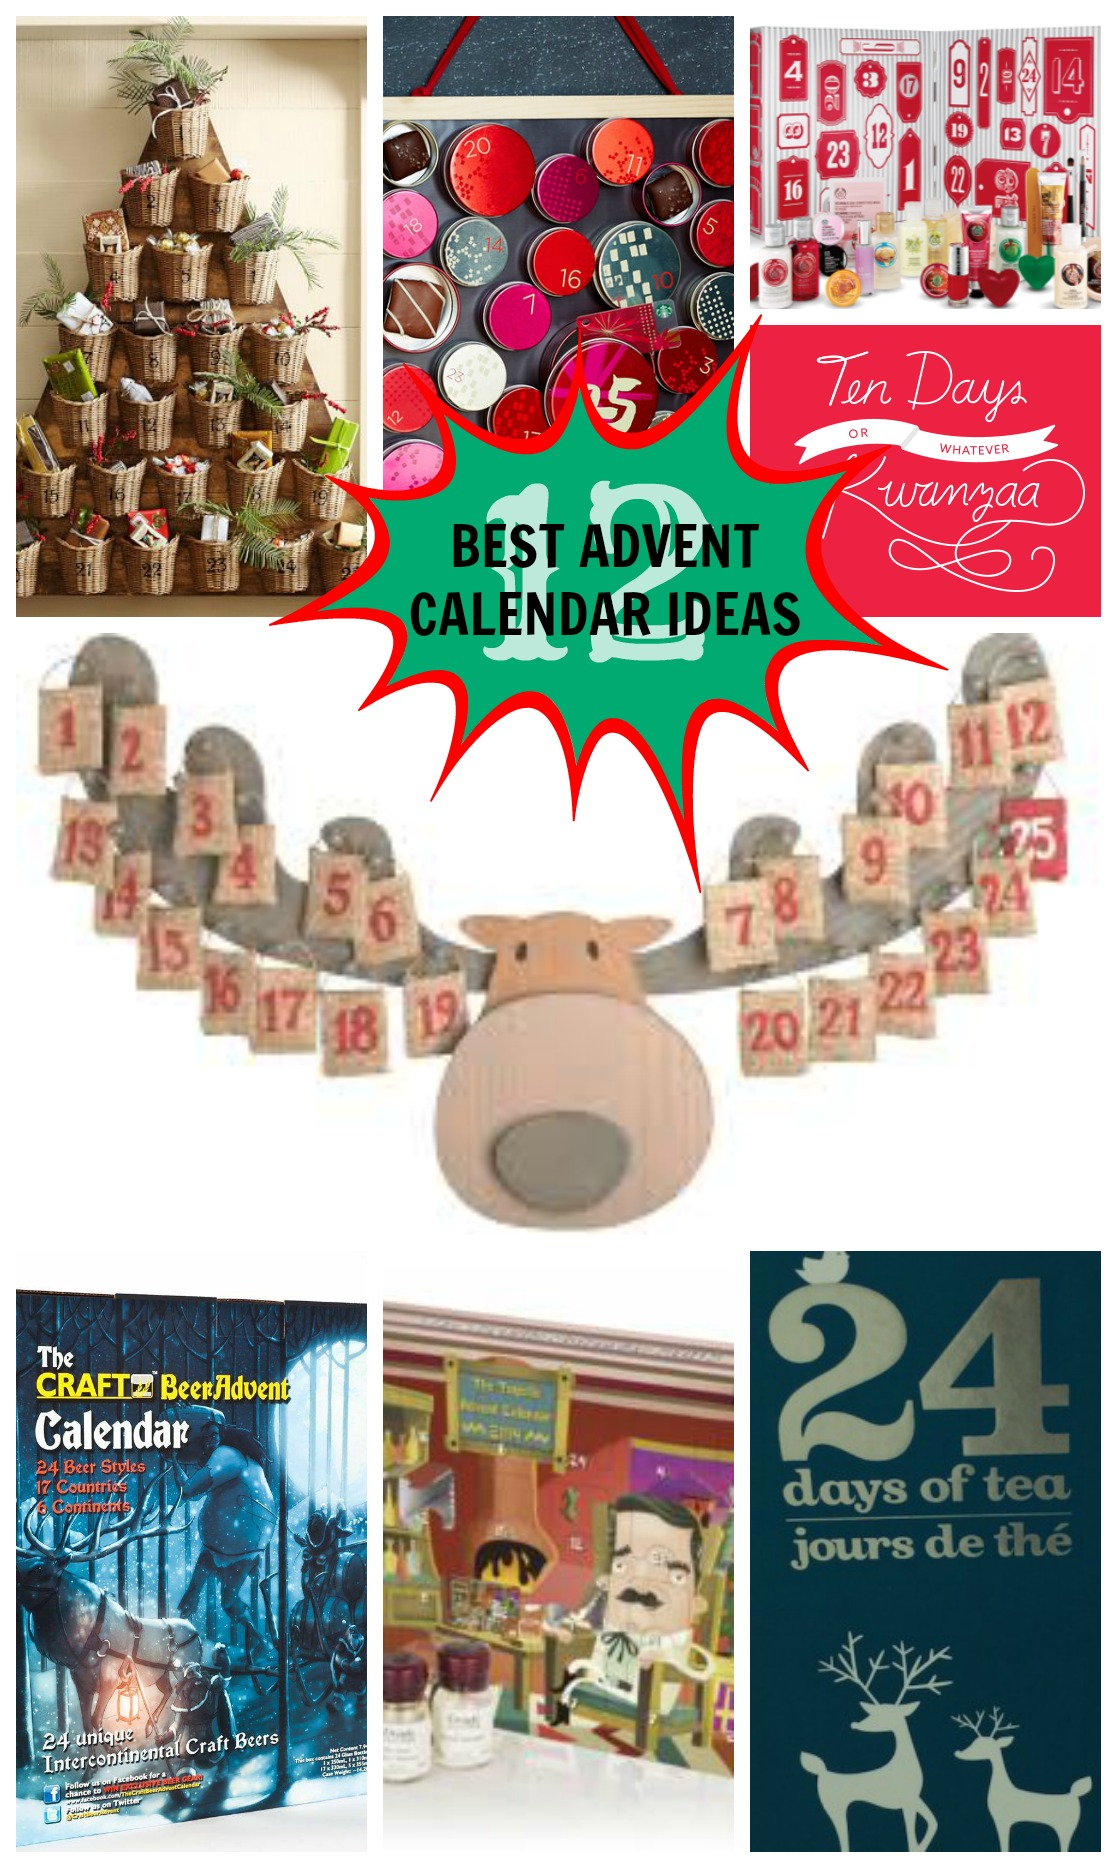 12 Best Advent Calendar Ideas